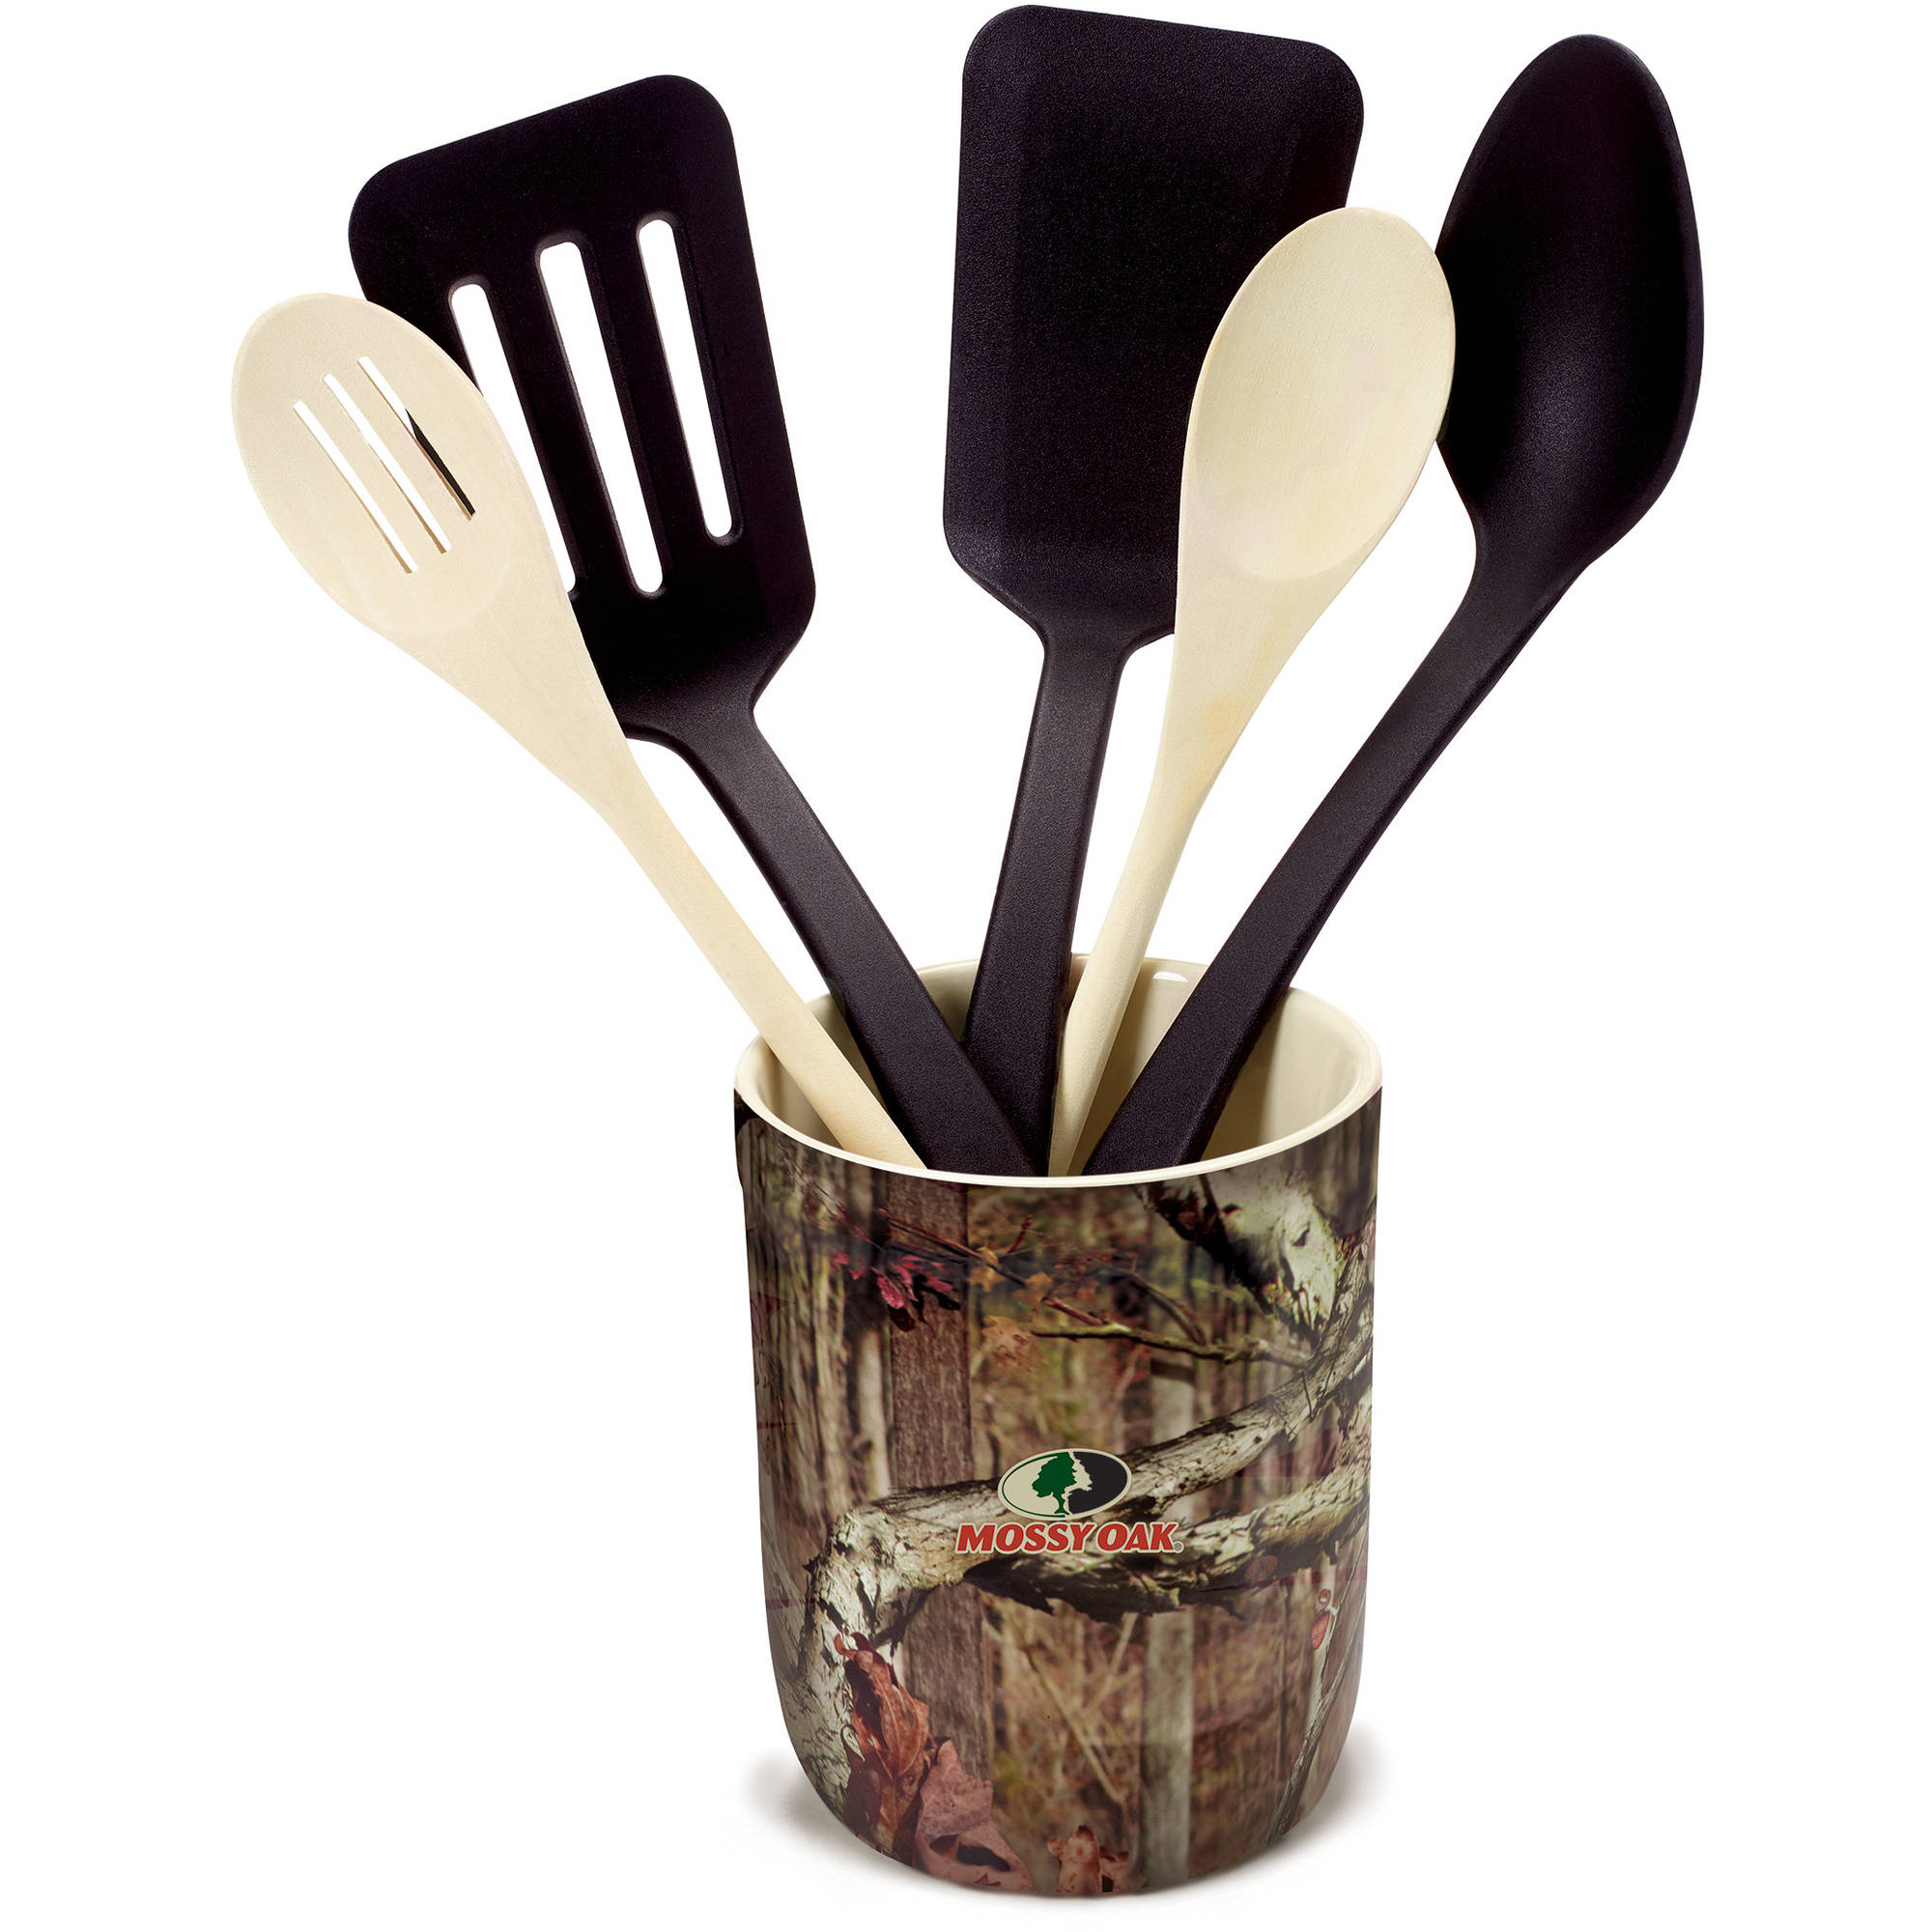 Mossy Oak 6-Piece Gadget Crock Set